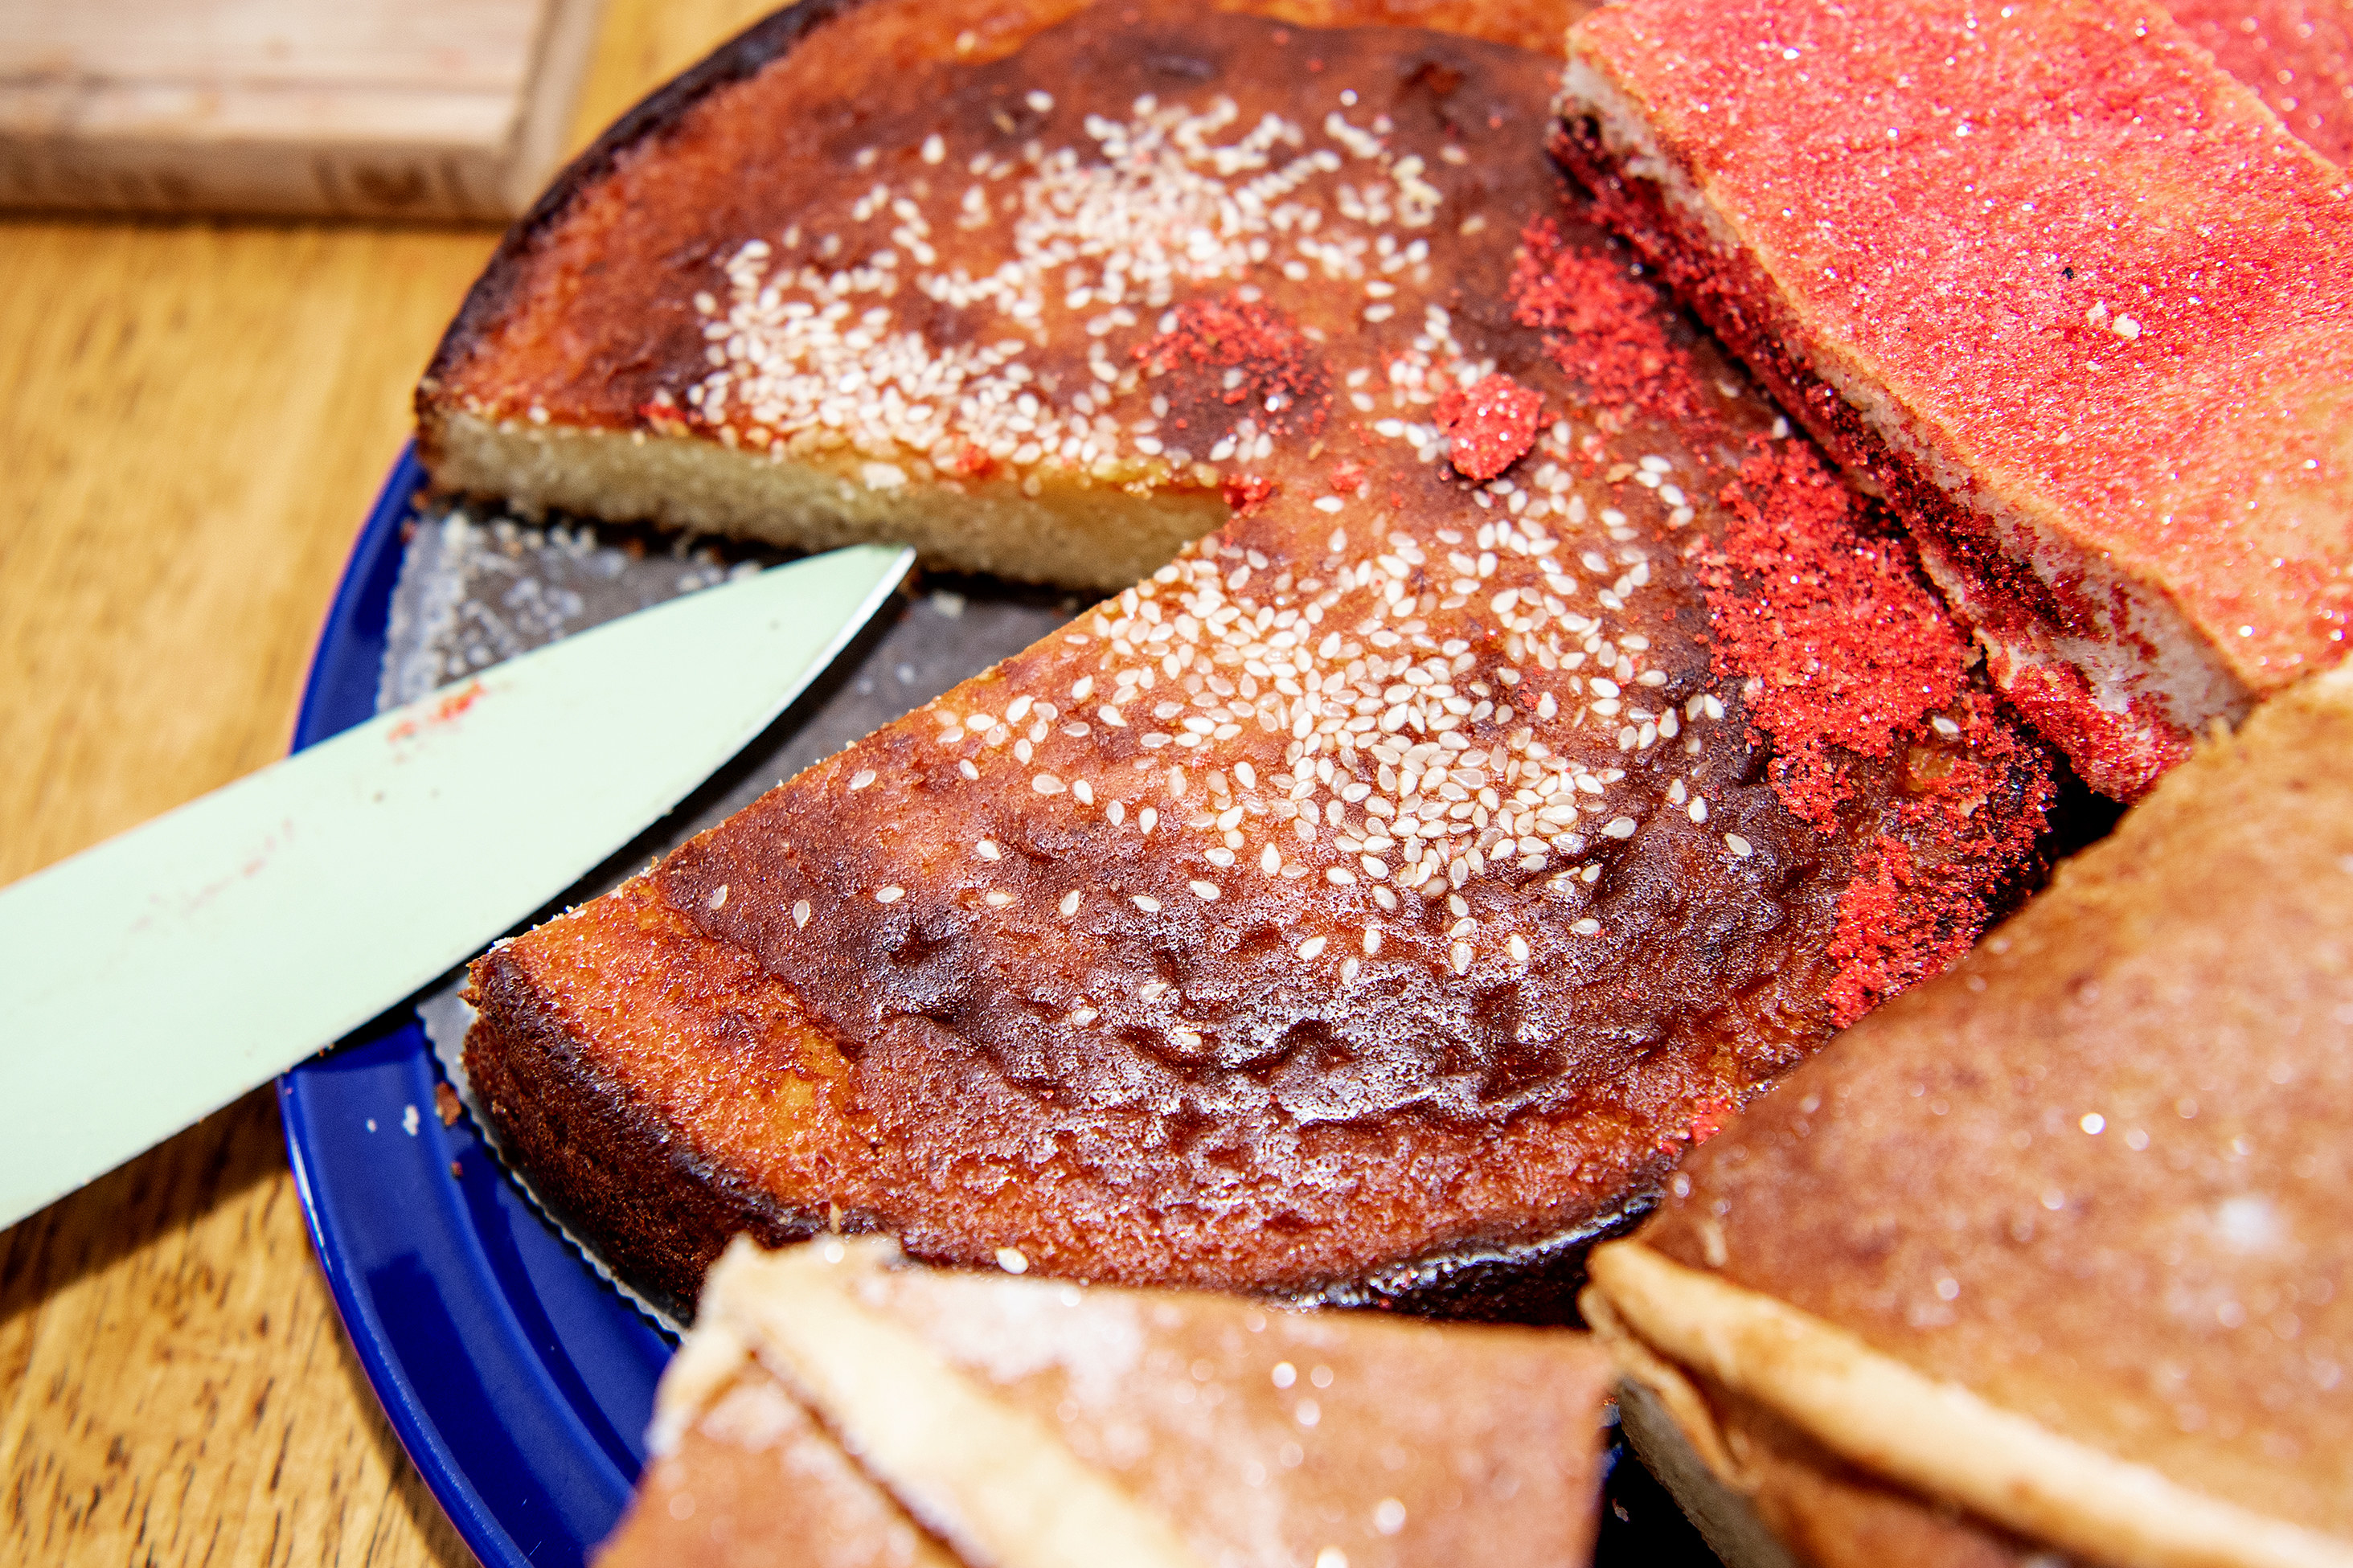 Knife cutting into Salvadoran quesadilla, or cheese pound cake. Other El Salvadorean treats surround the cake.